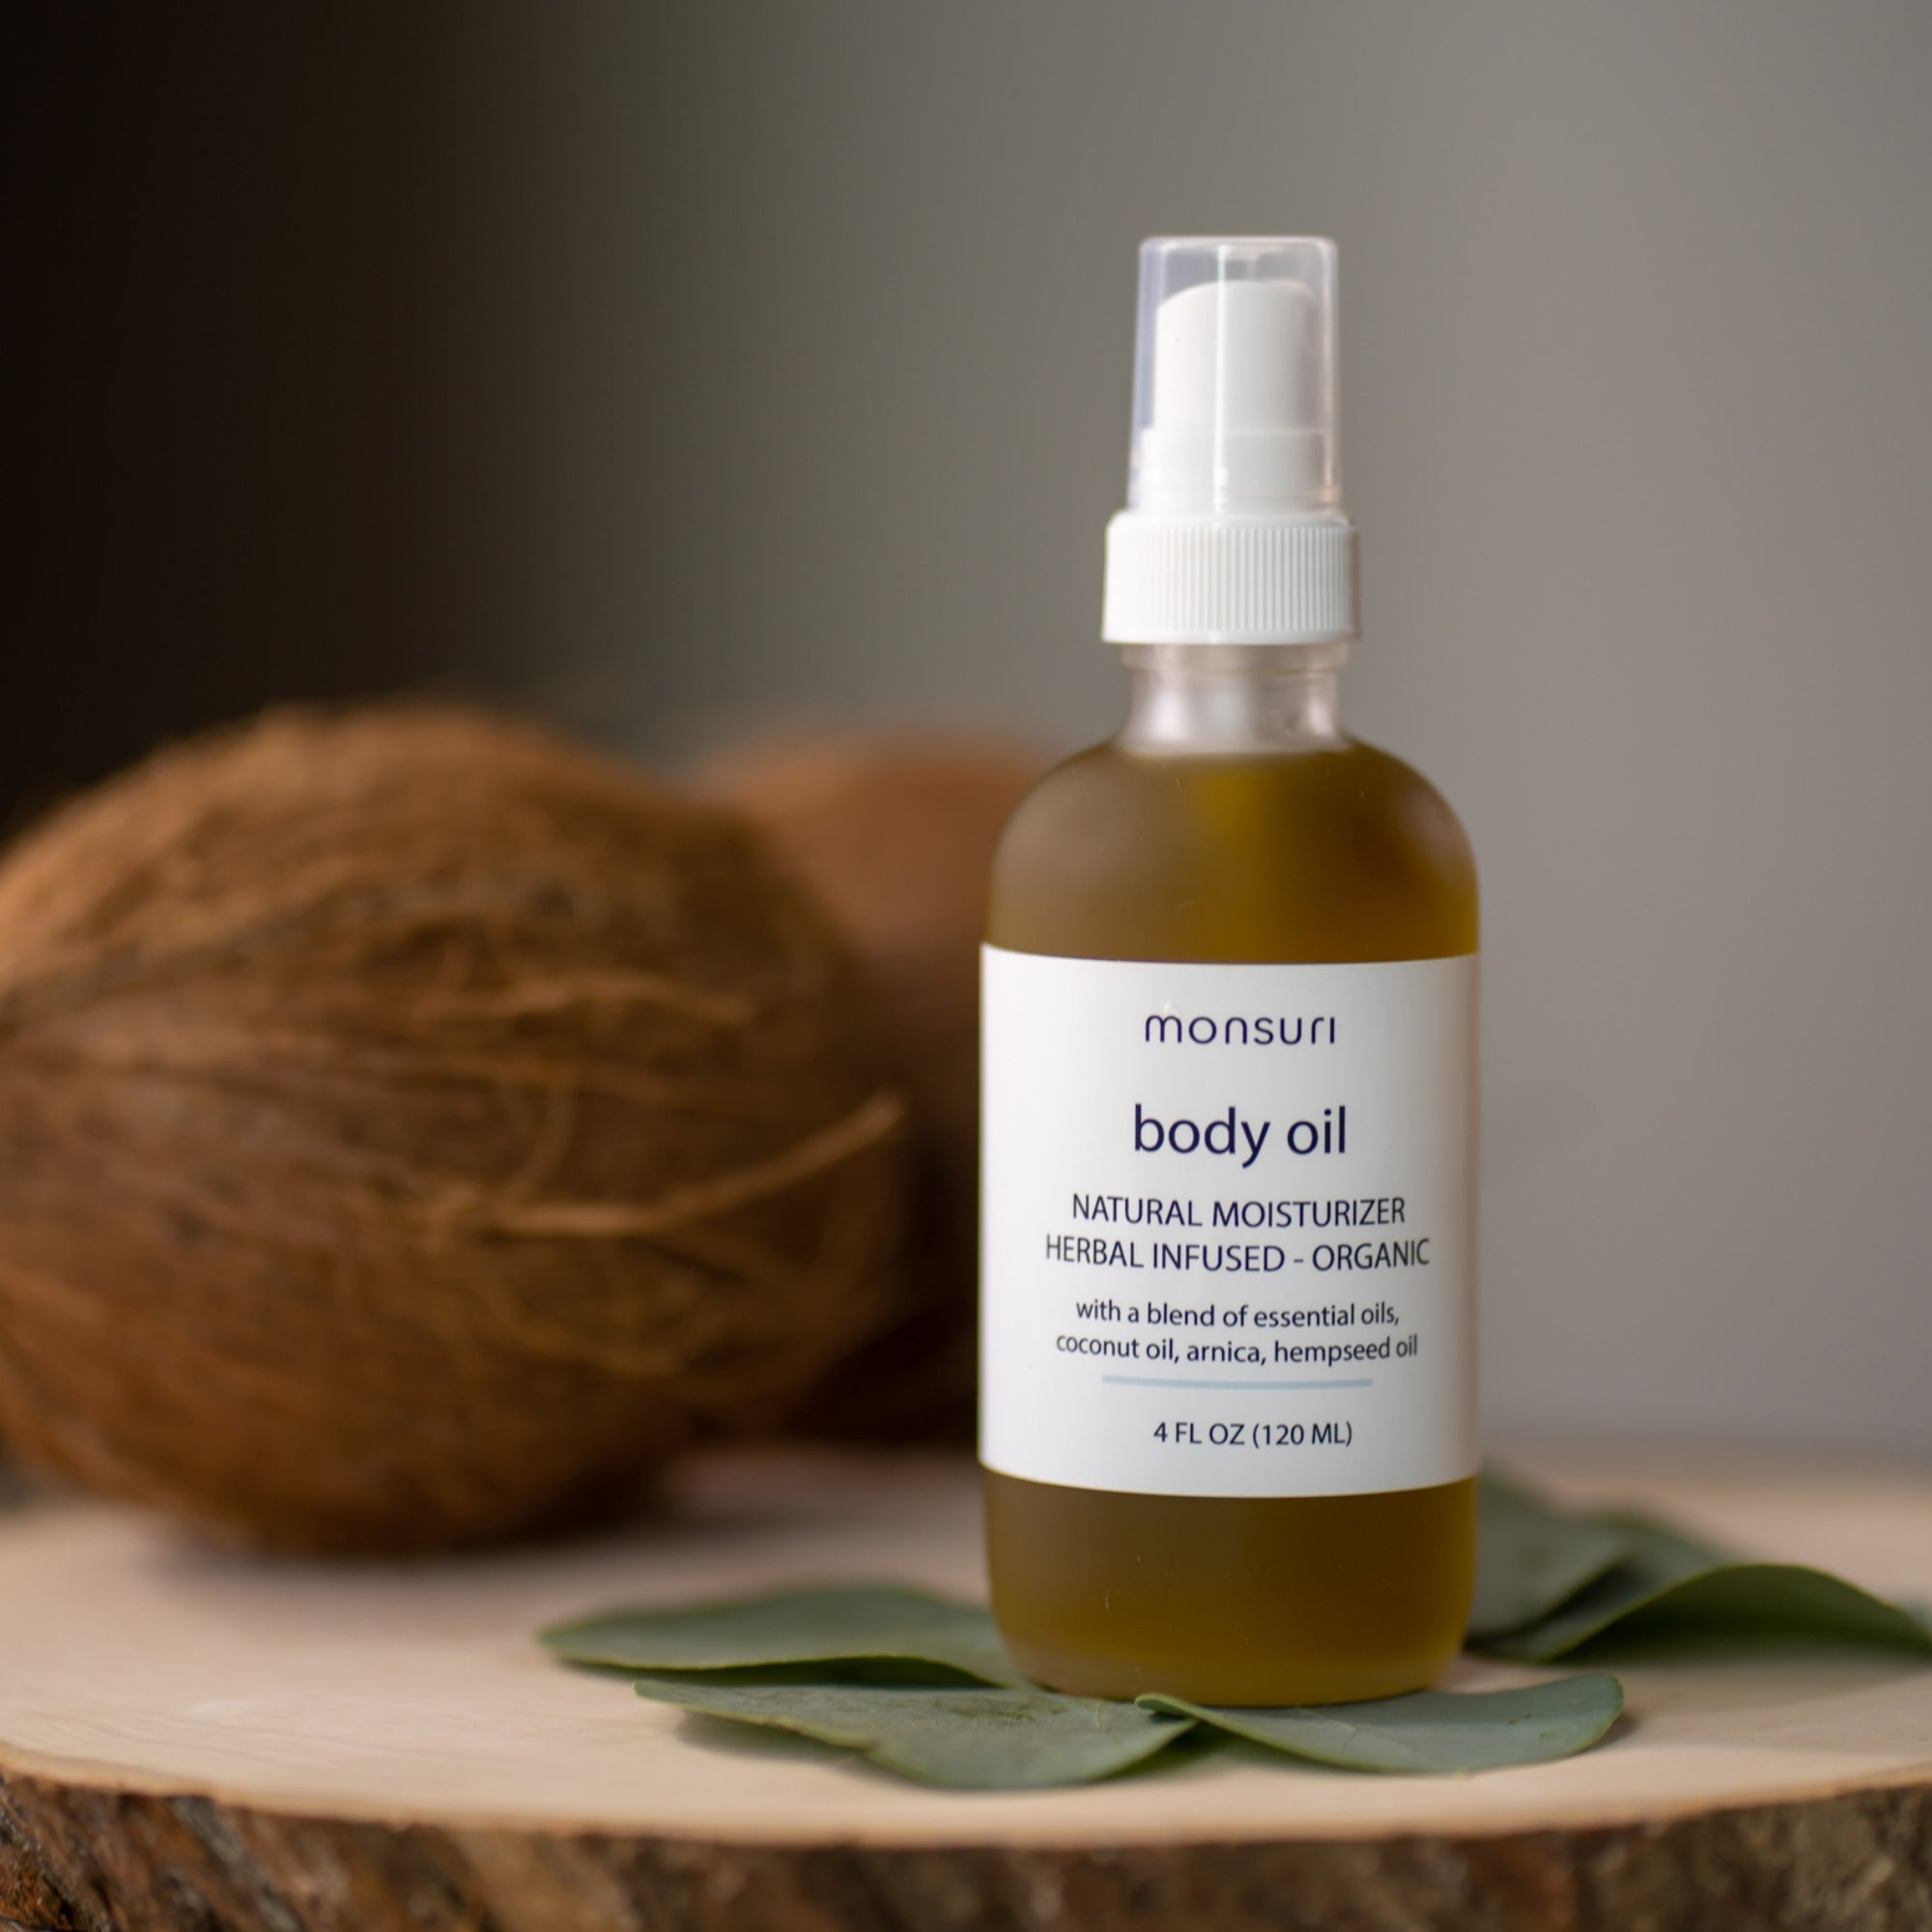 Aromatherapy massage body oil for skin - self-care gift ideas